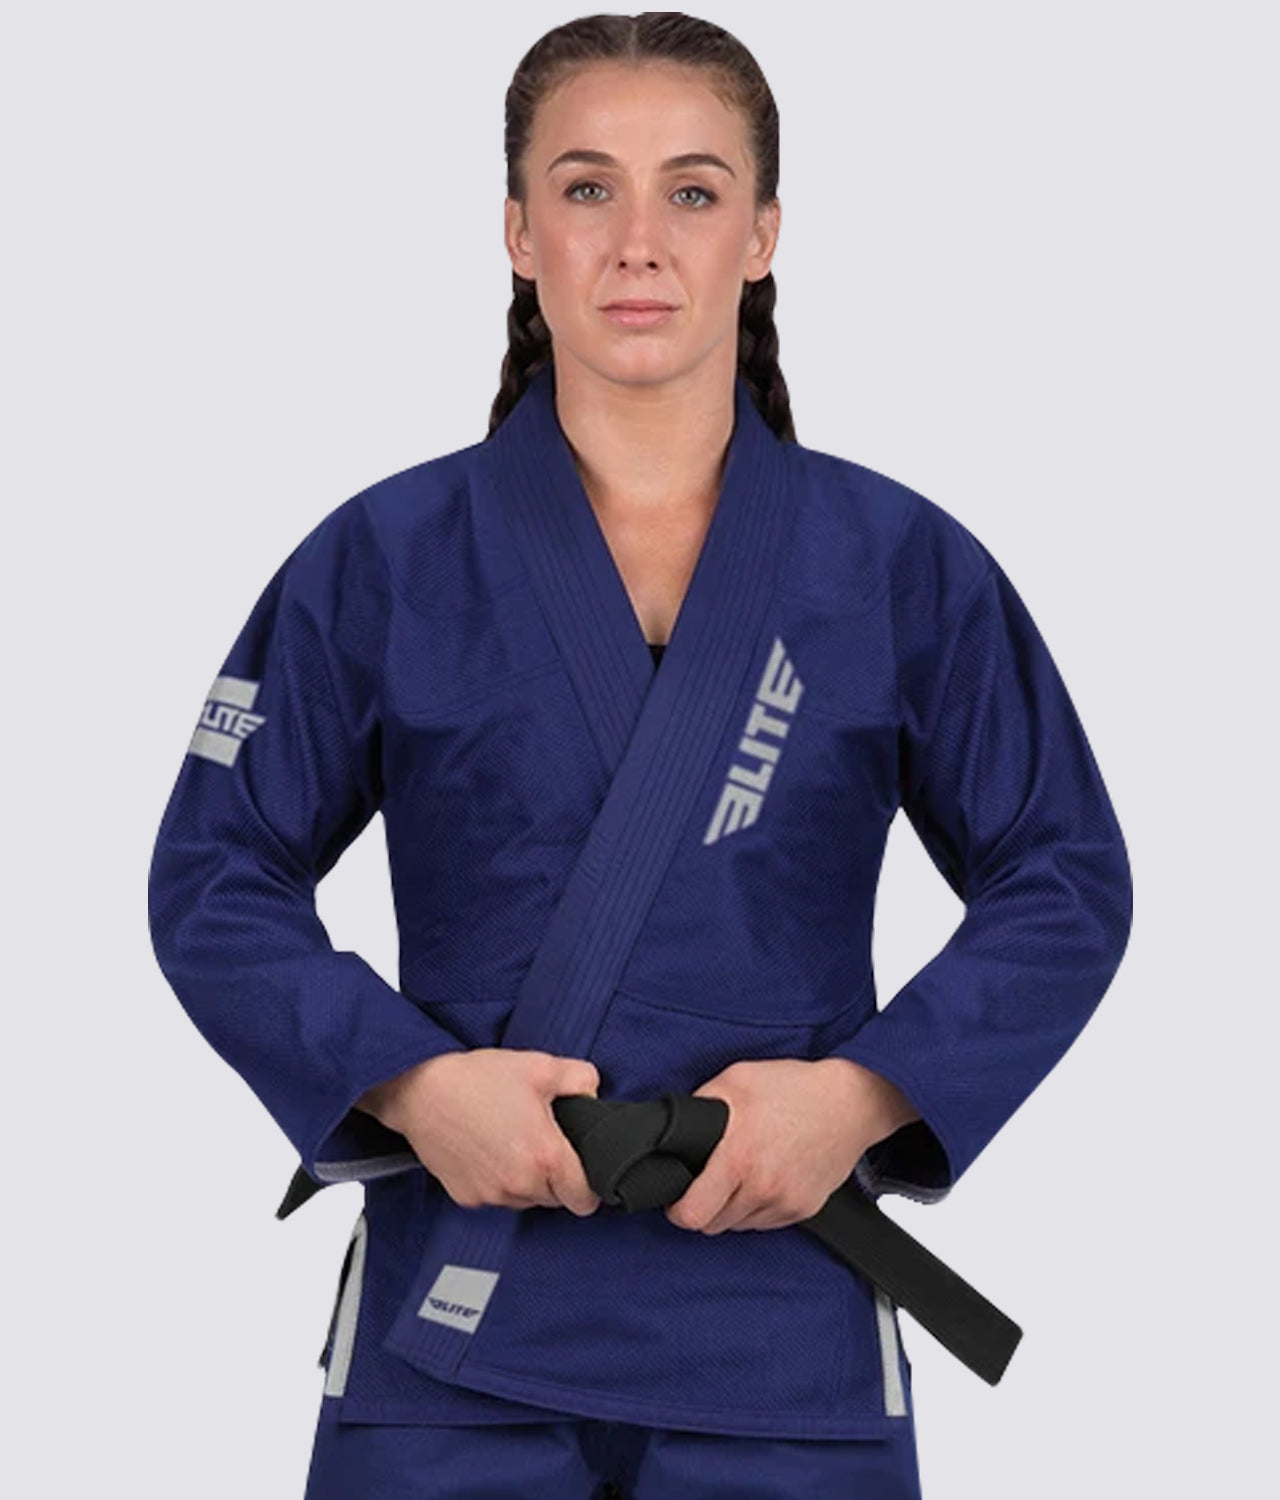 Elite Sports Lightweight Preshrunk Antibacterial Navy Women Brazilian Jiu Jitsu BJJ Gi With Free White Belt